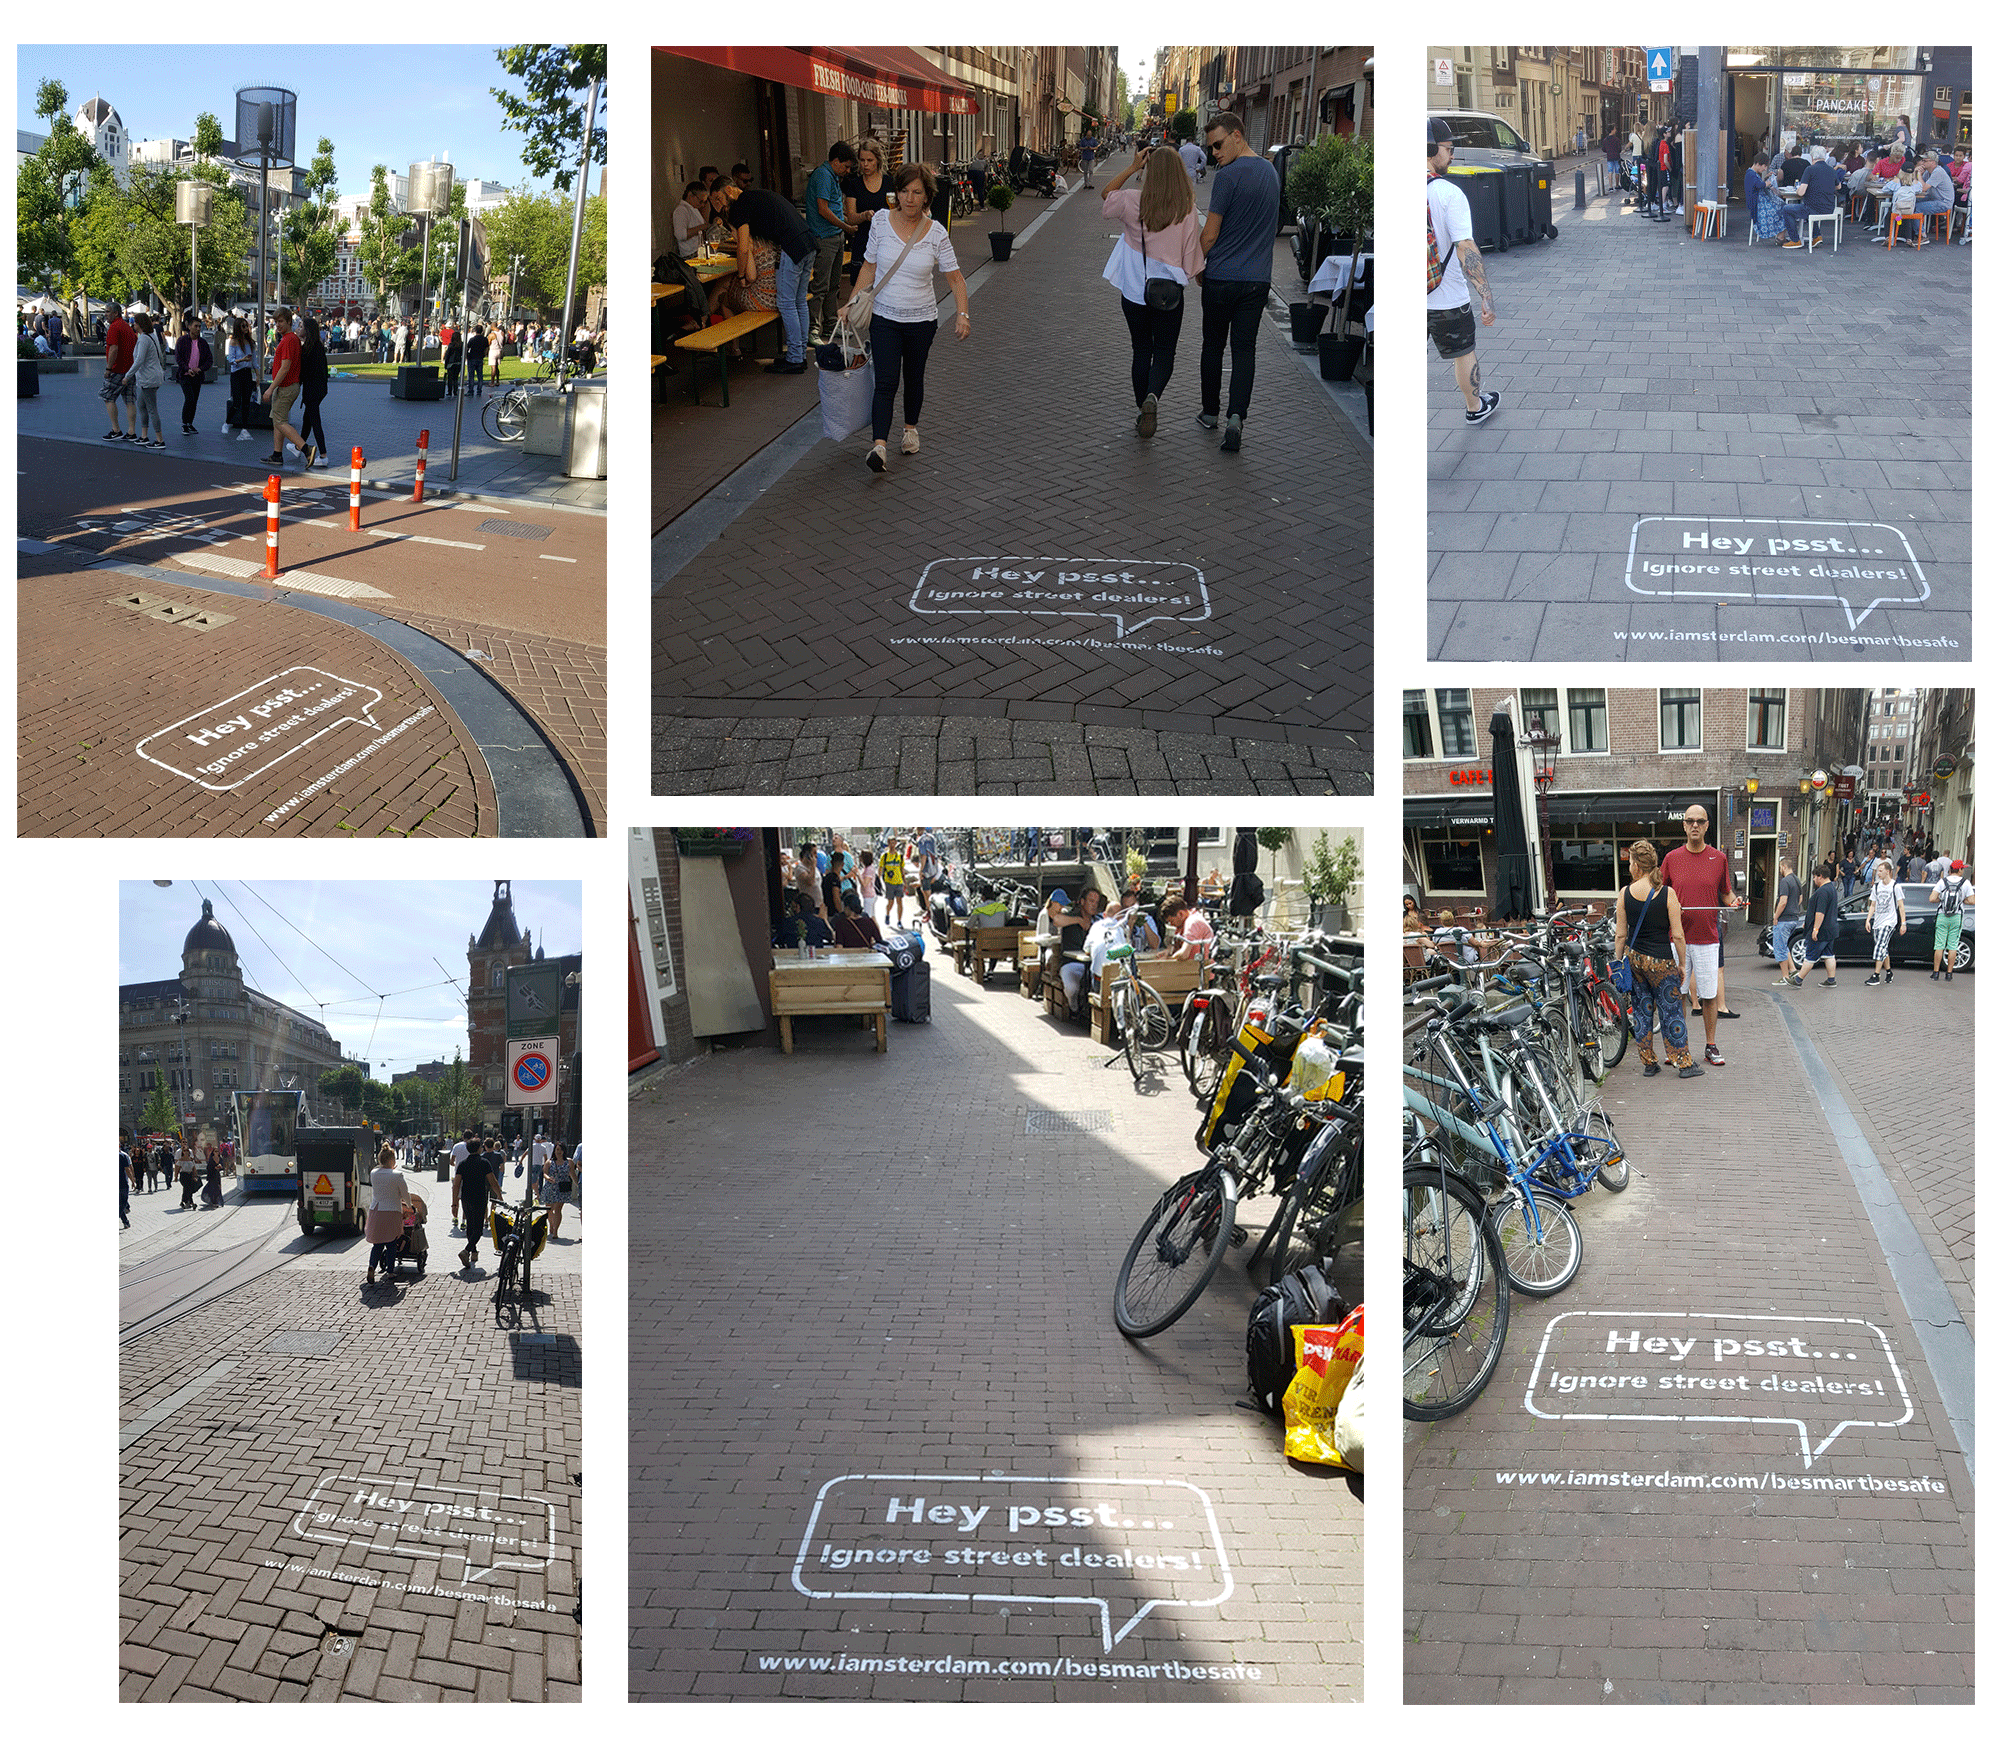 StreetAds Marketing Campagne voor de Gemeente Amsterdam